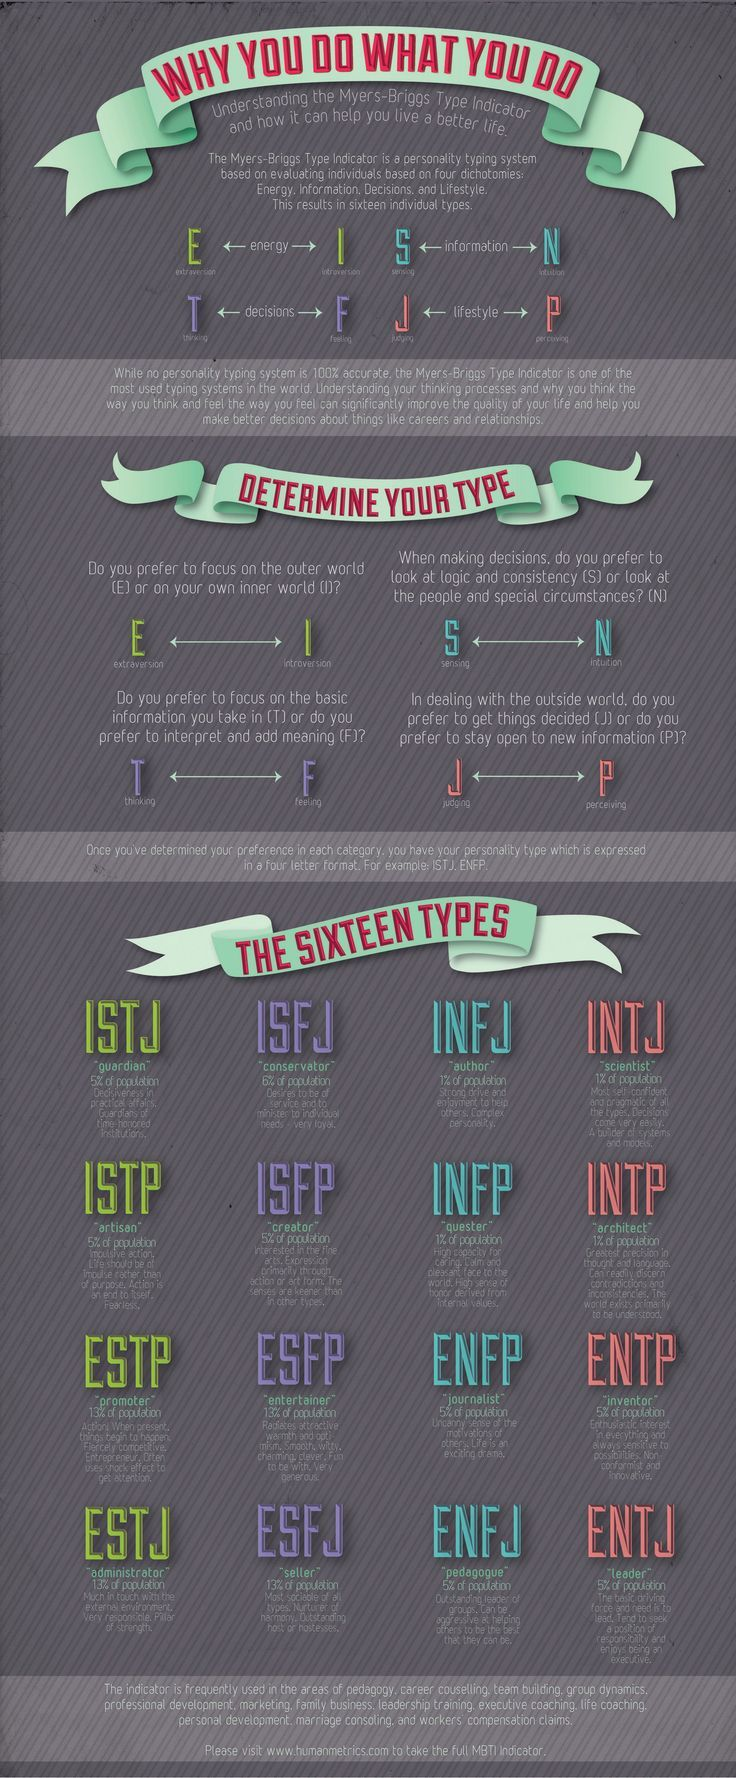 People are asking for the MBTI, so here ya go!  There are quizzes online to take too, just google Meyers-Briggs.    Source: http://www.pinterest.com/pin/485122191081501587/